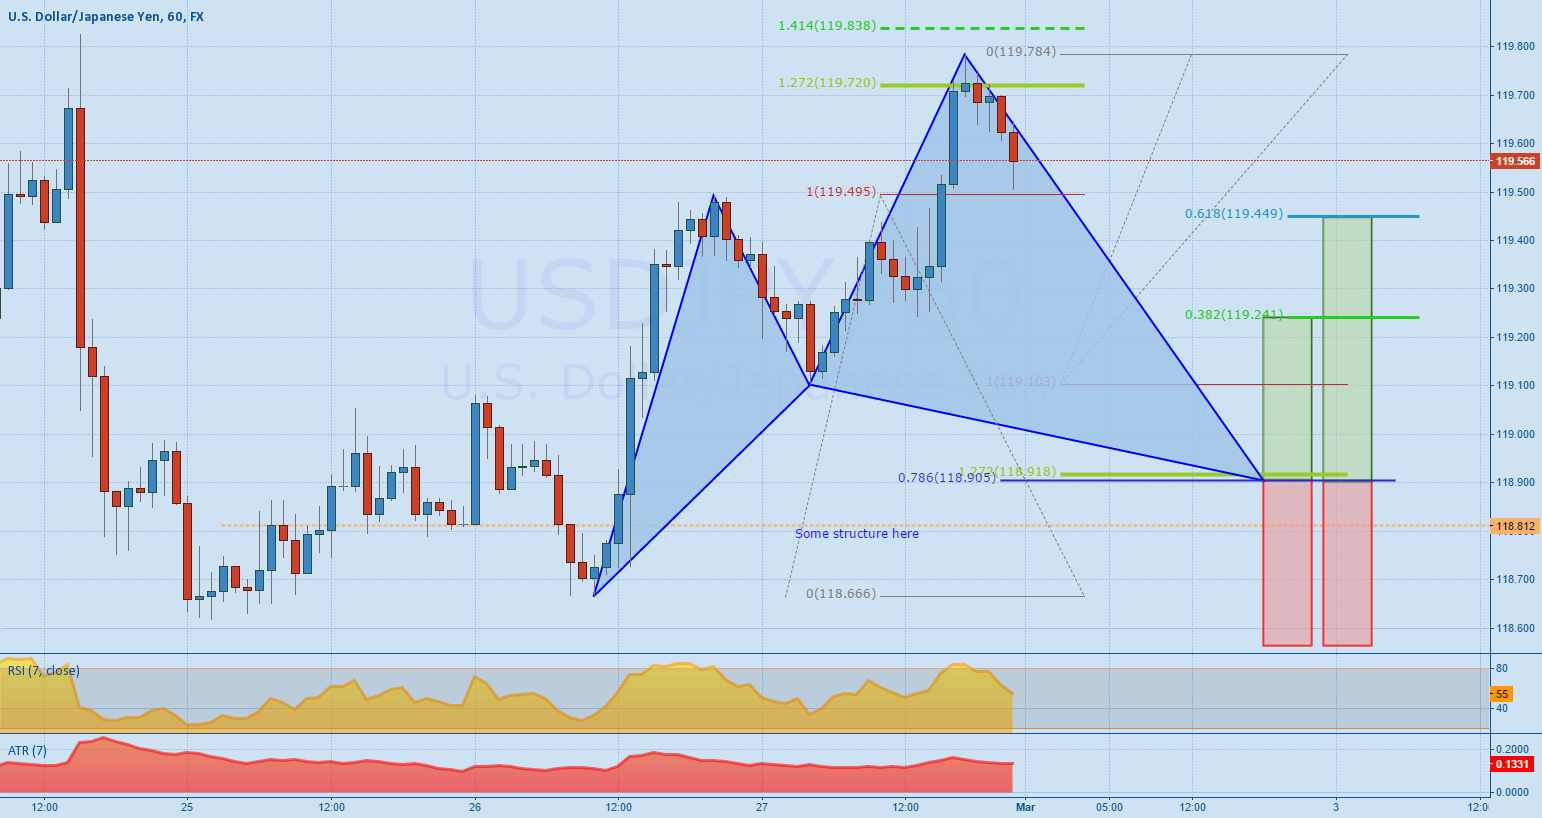 USDJPY - Potential bullish cypher pattern